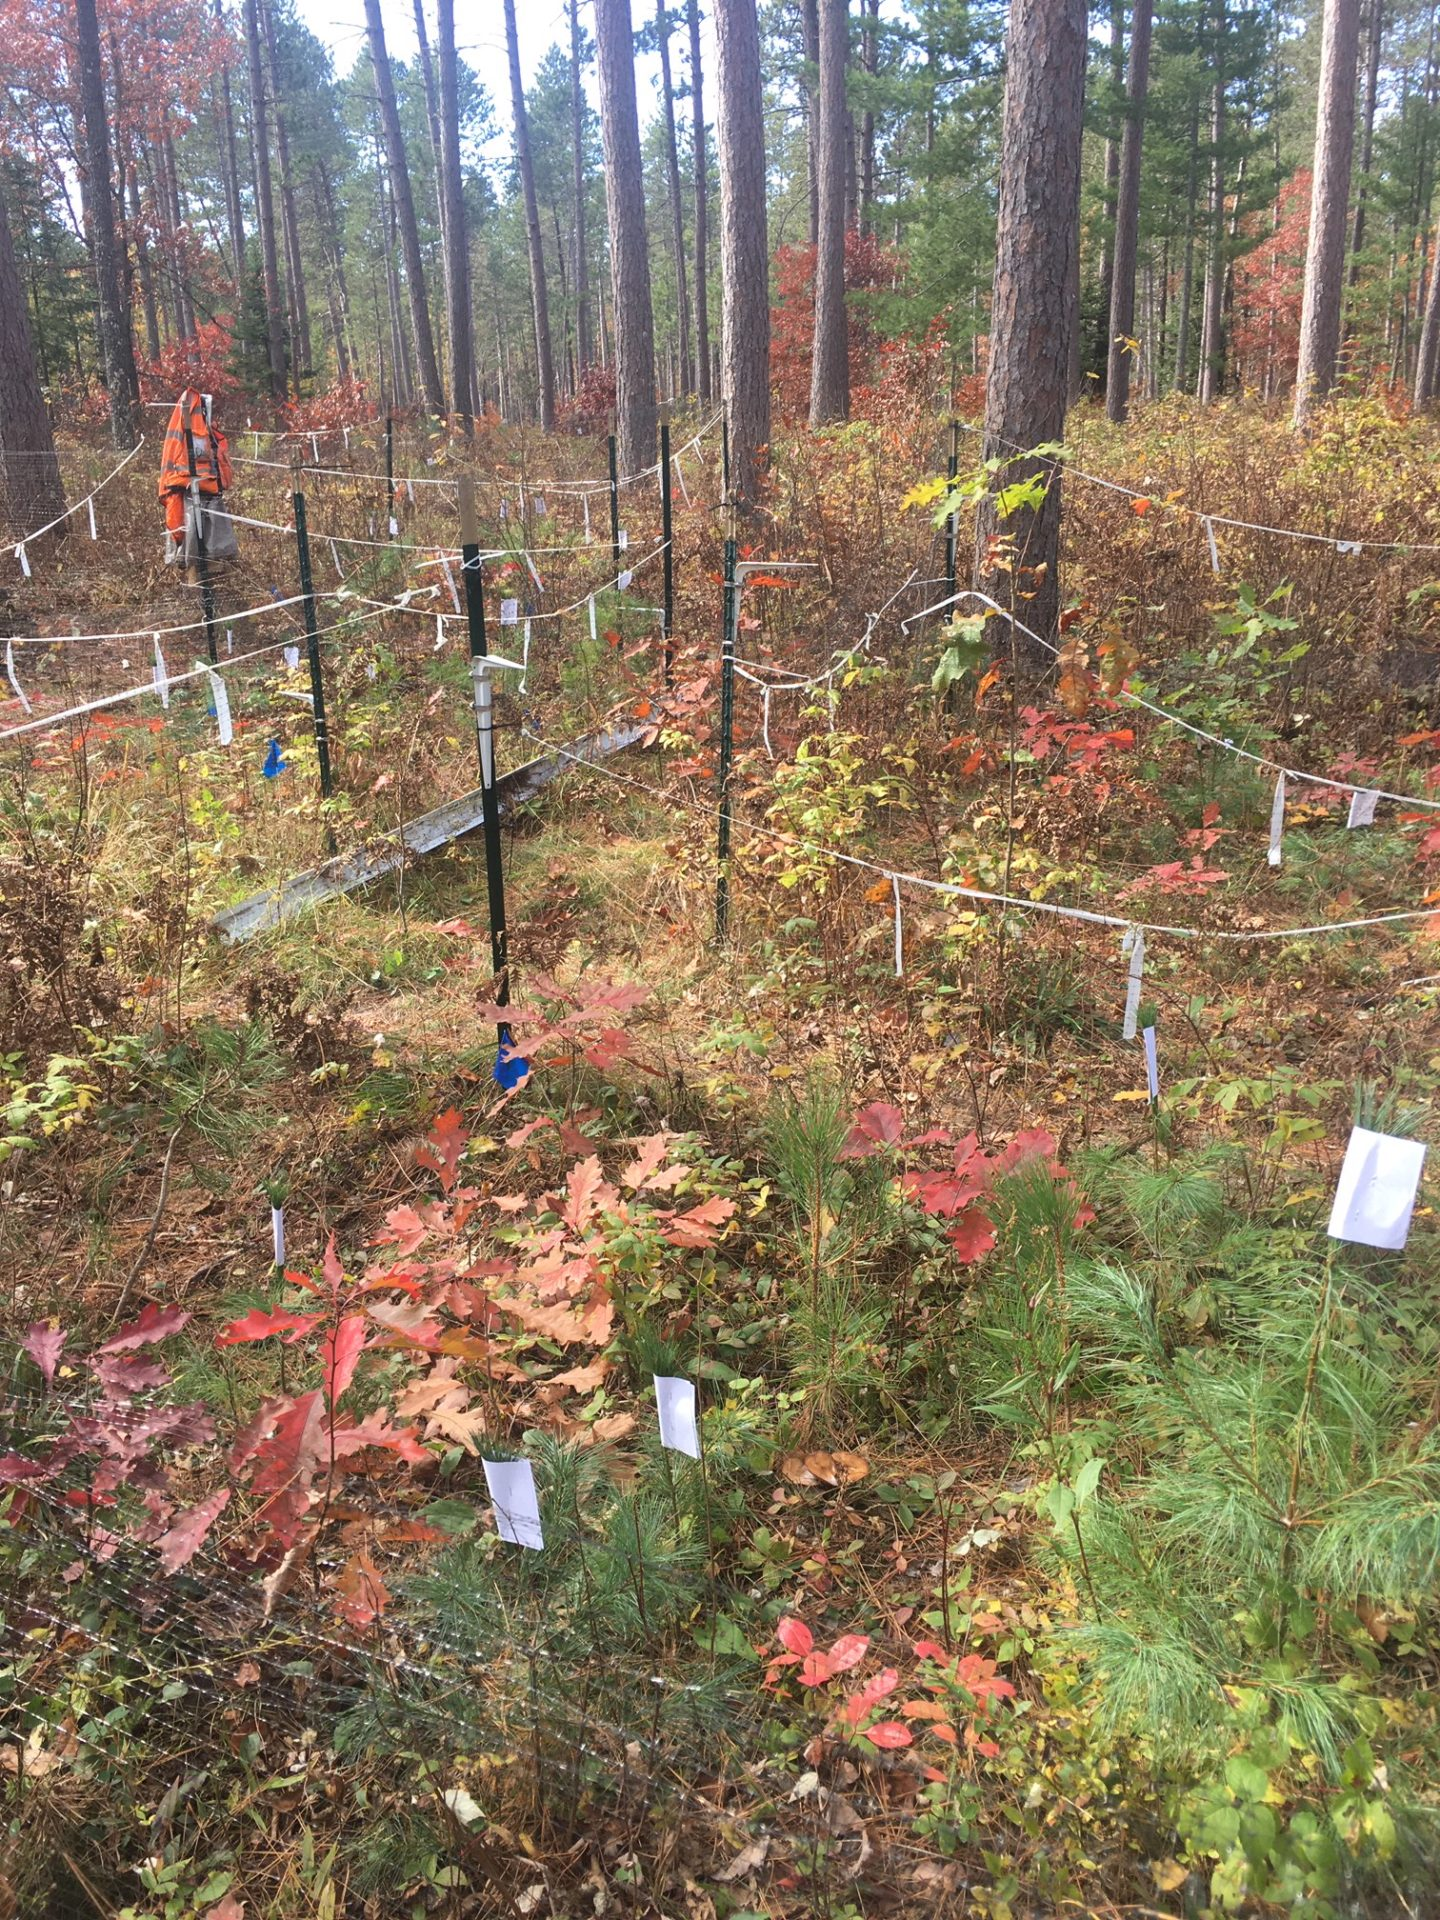 Tied off research plots in a forest